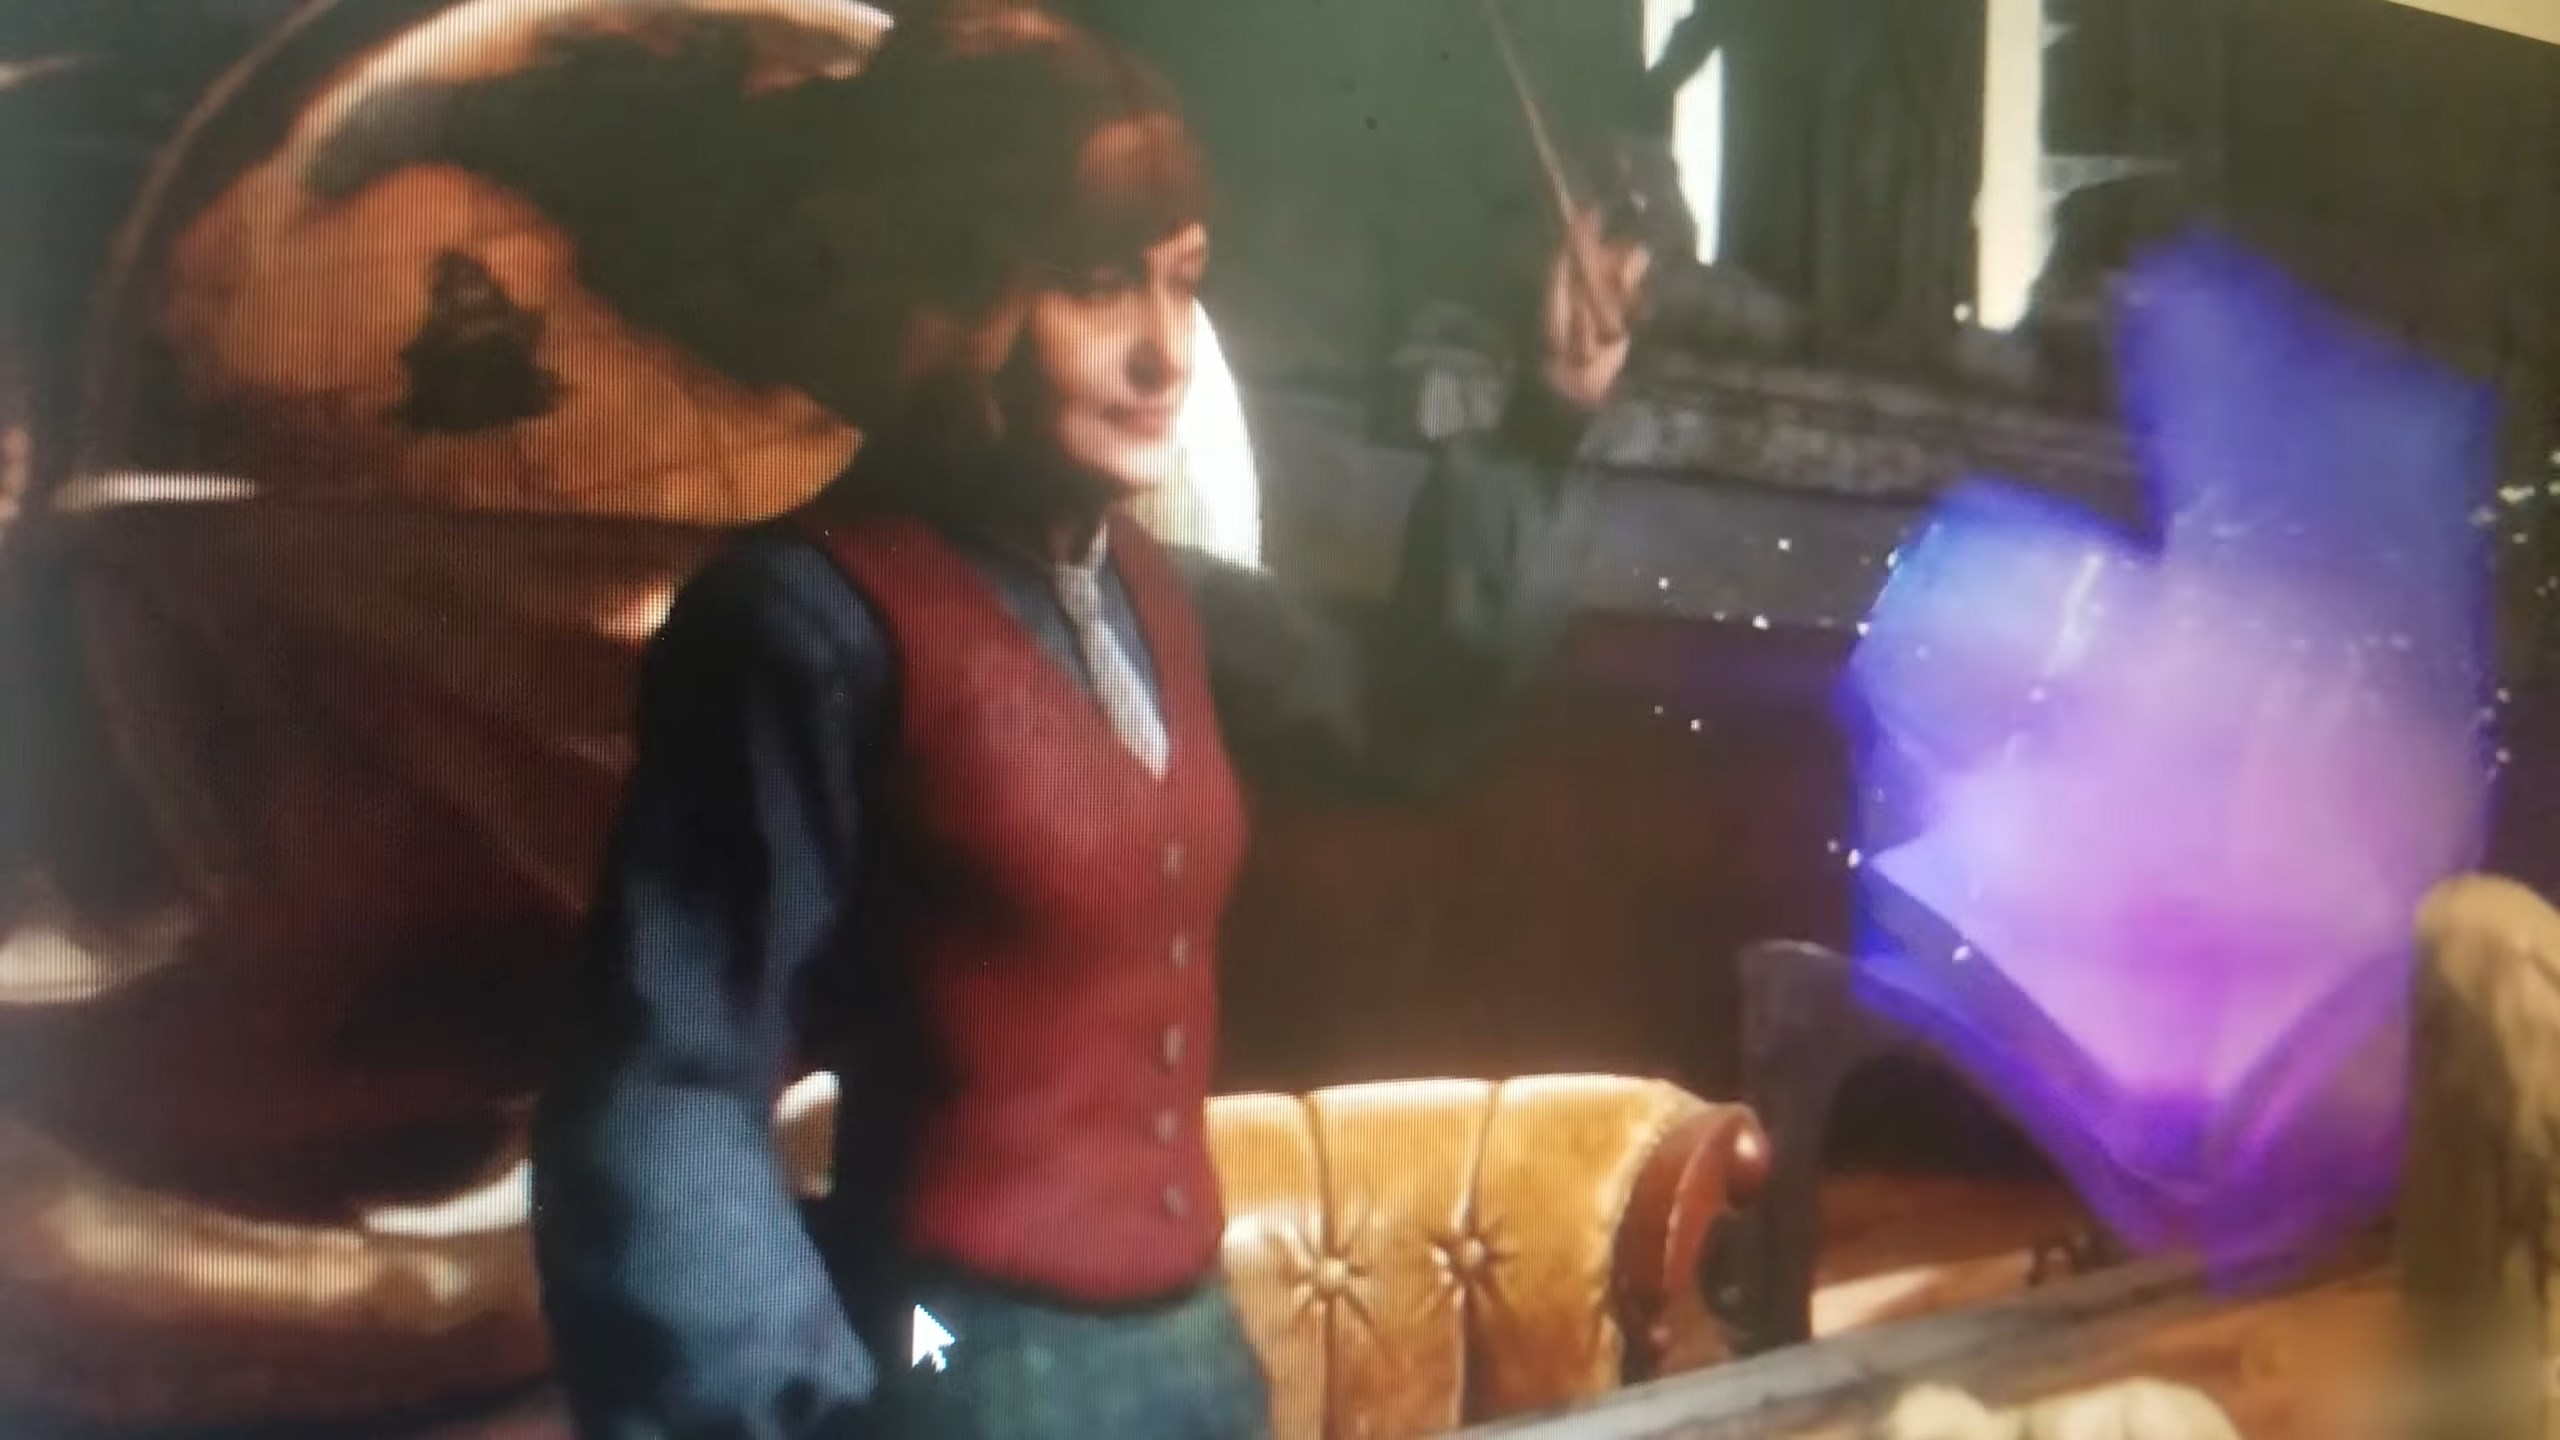 Warner Is Working On A Harry Potter RPG Titled Magic Awakened Reports VG247